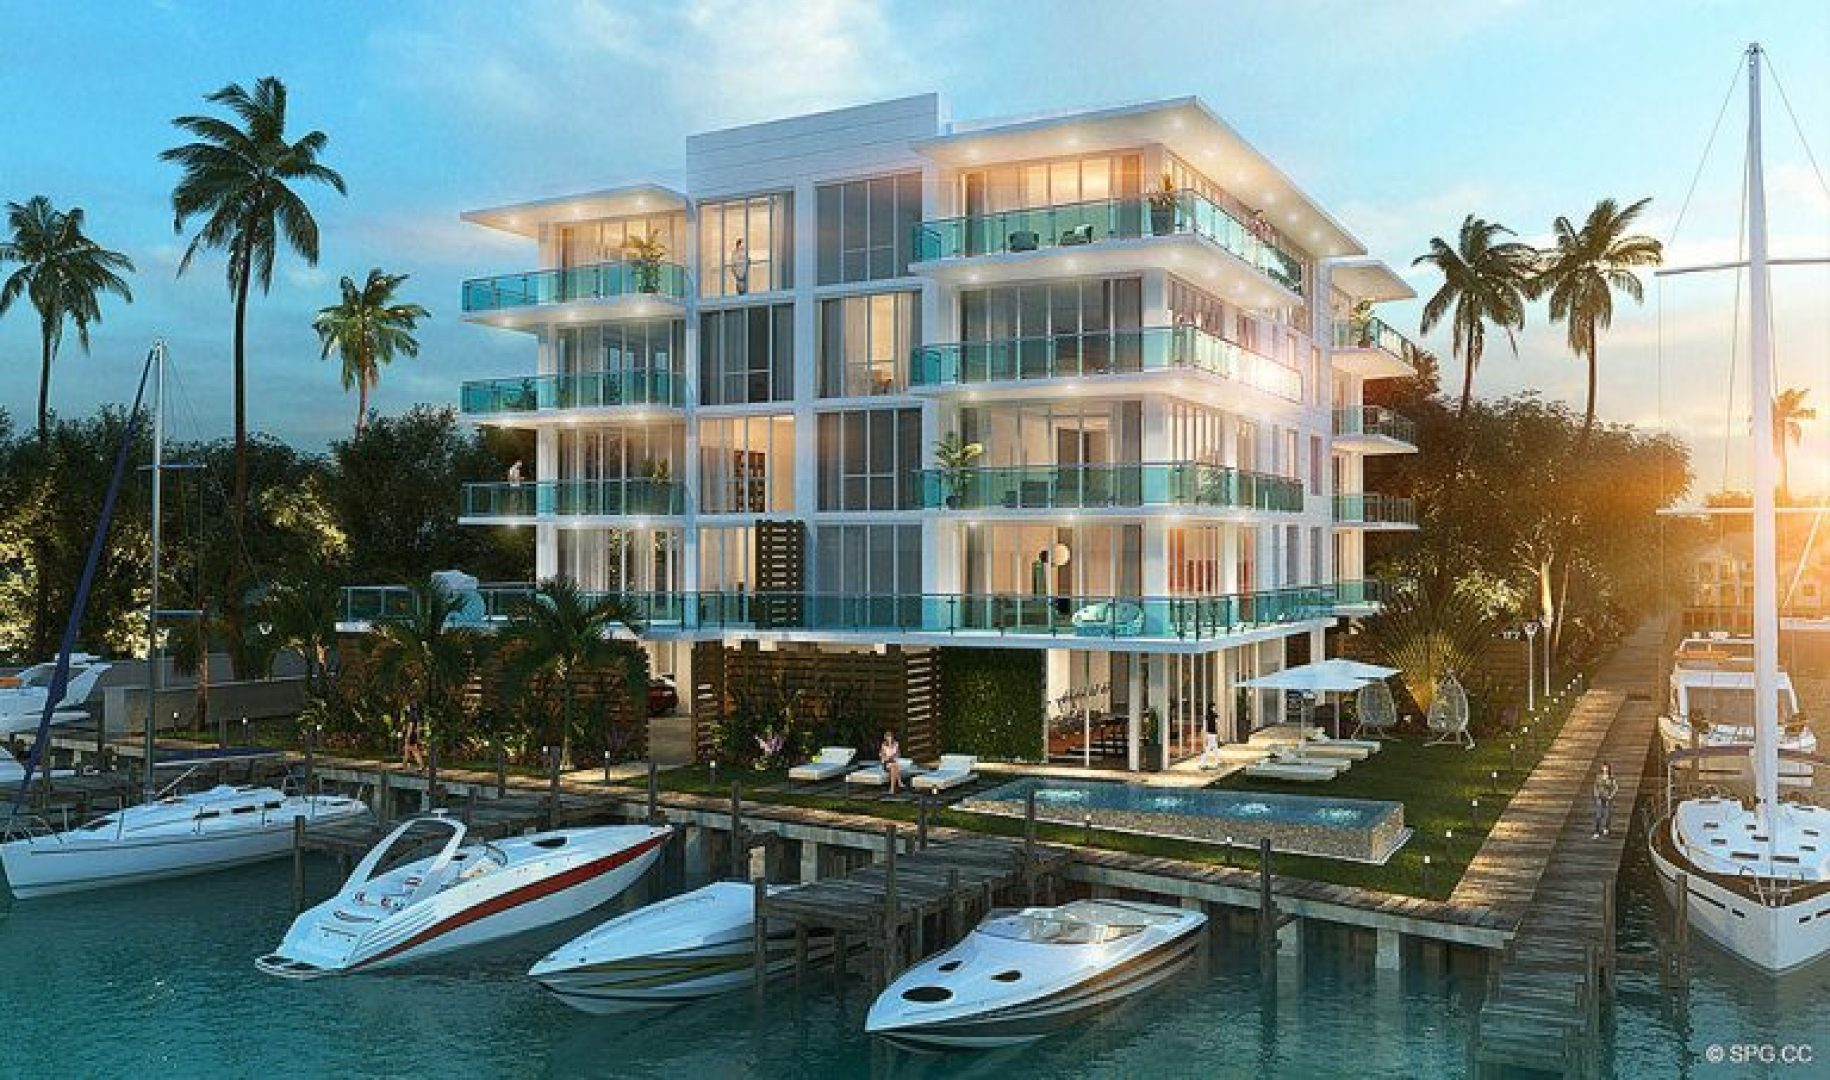 33 Intracoastal, Luxury Waterfront Condominiums in Fort Lauderdale, Florida 33306